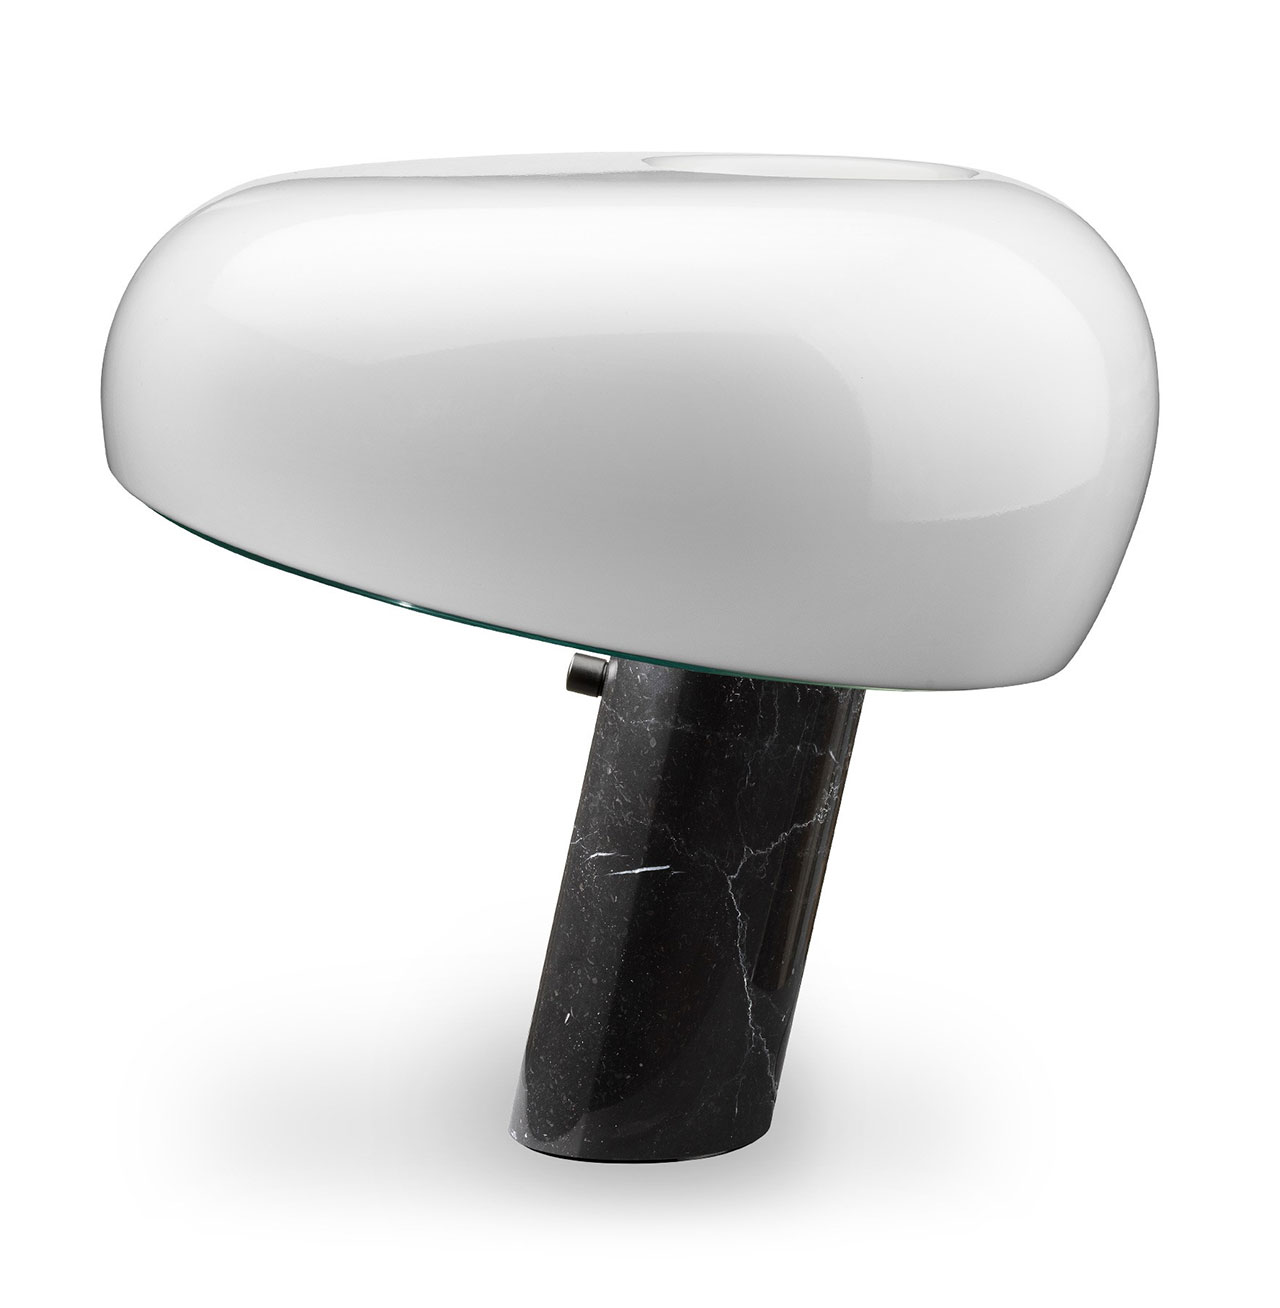 Mohd Special Edition: Snoopy White Table Lamp. Photo © Mohd.